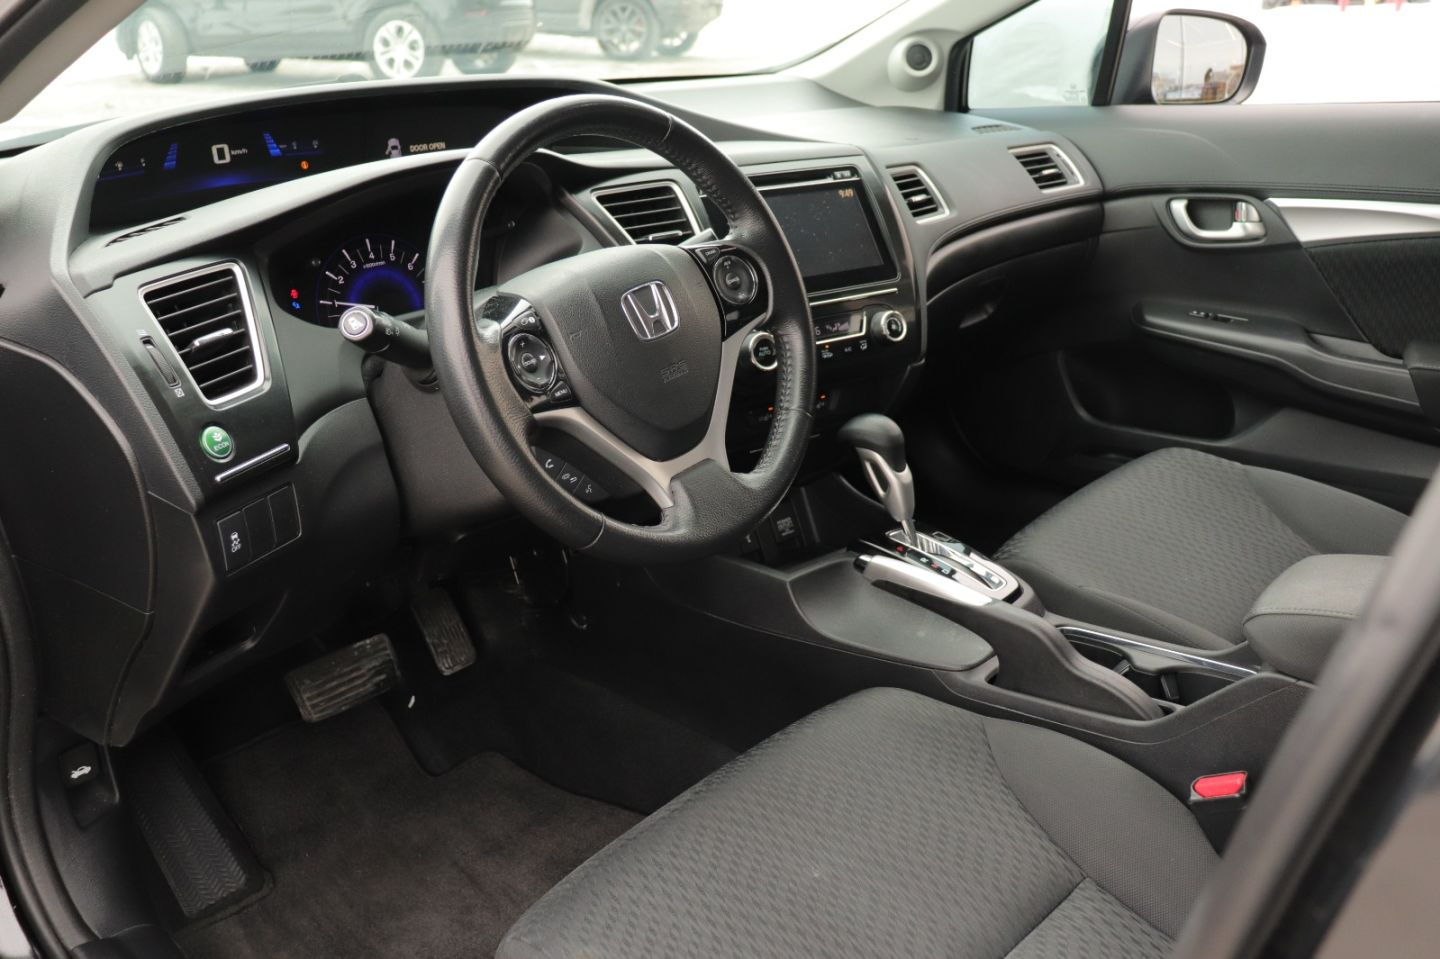 2015 Honda Civic Sedan EX for sale in London, Ontario